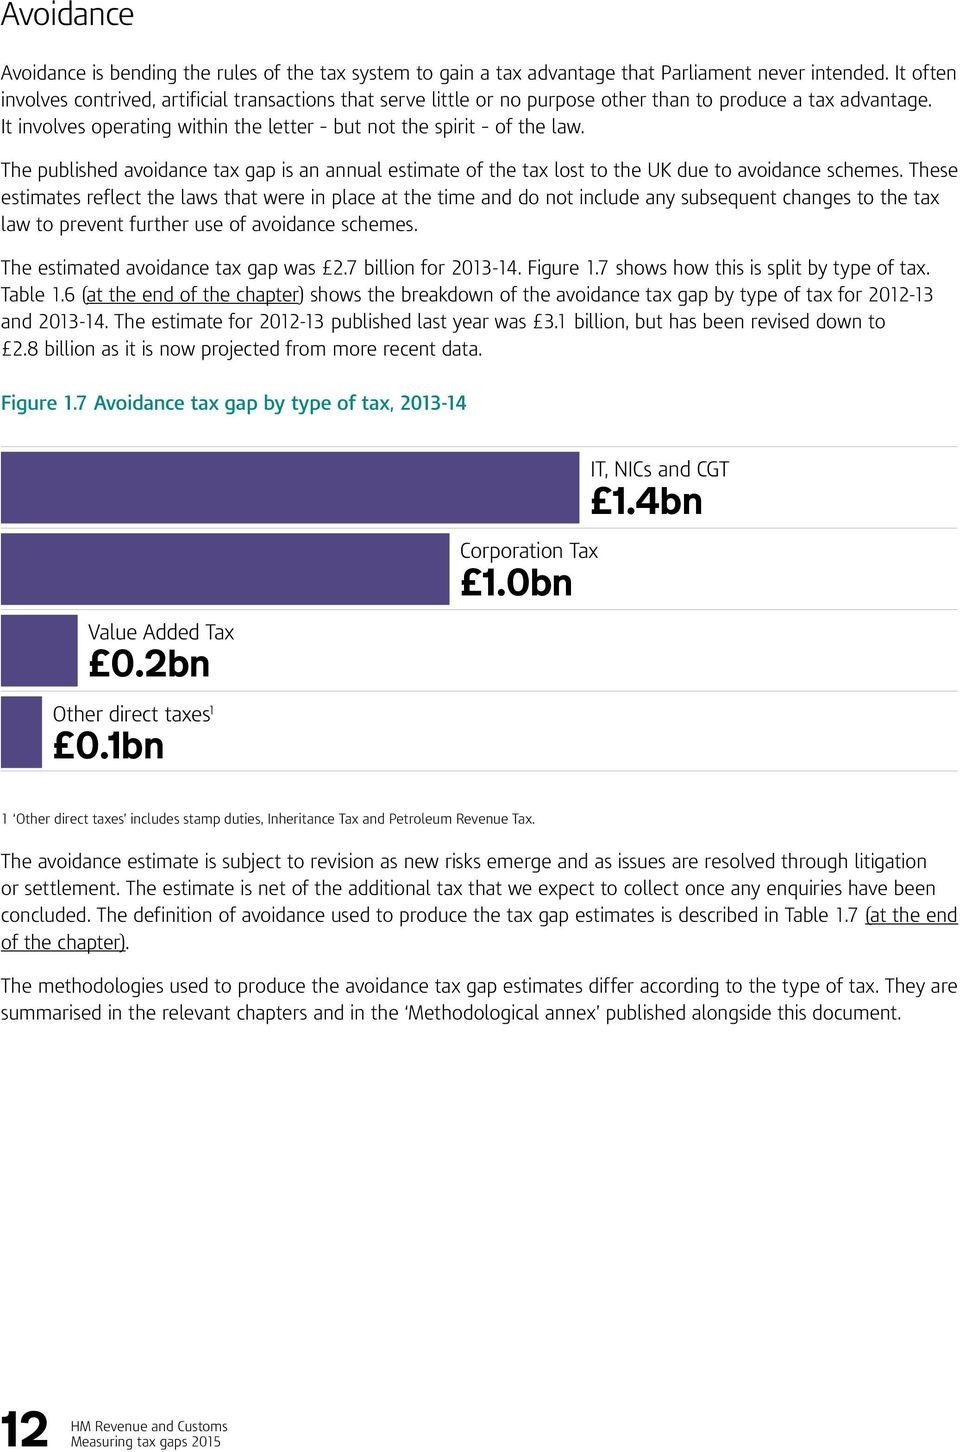 The published avoidance tax gap is an annual estimate of the tax lost to the UK due to avoidance schemes.